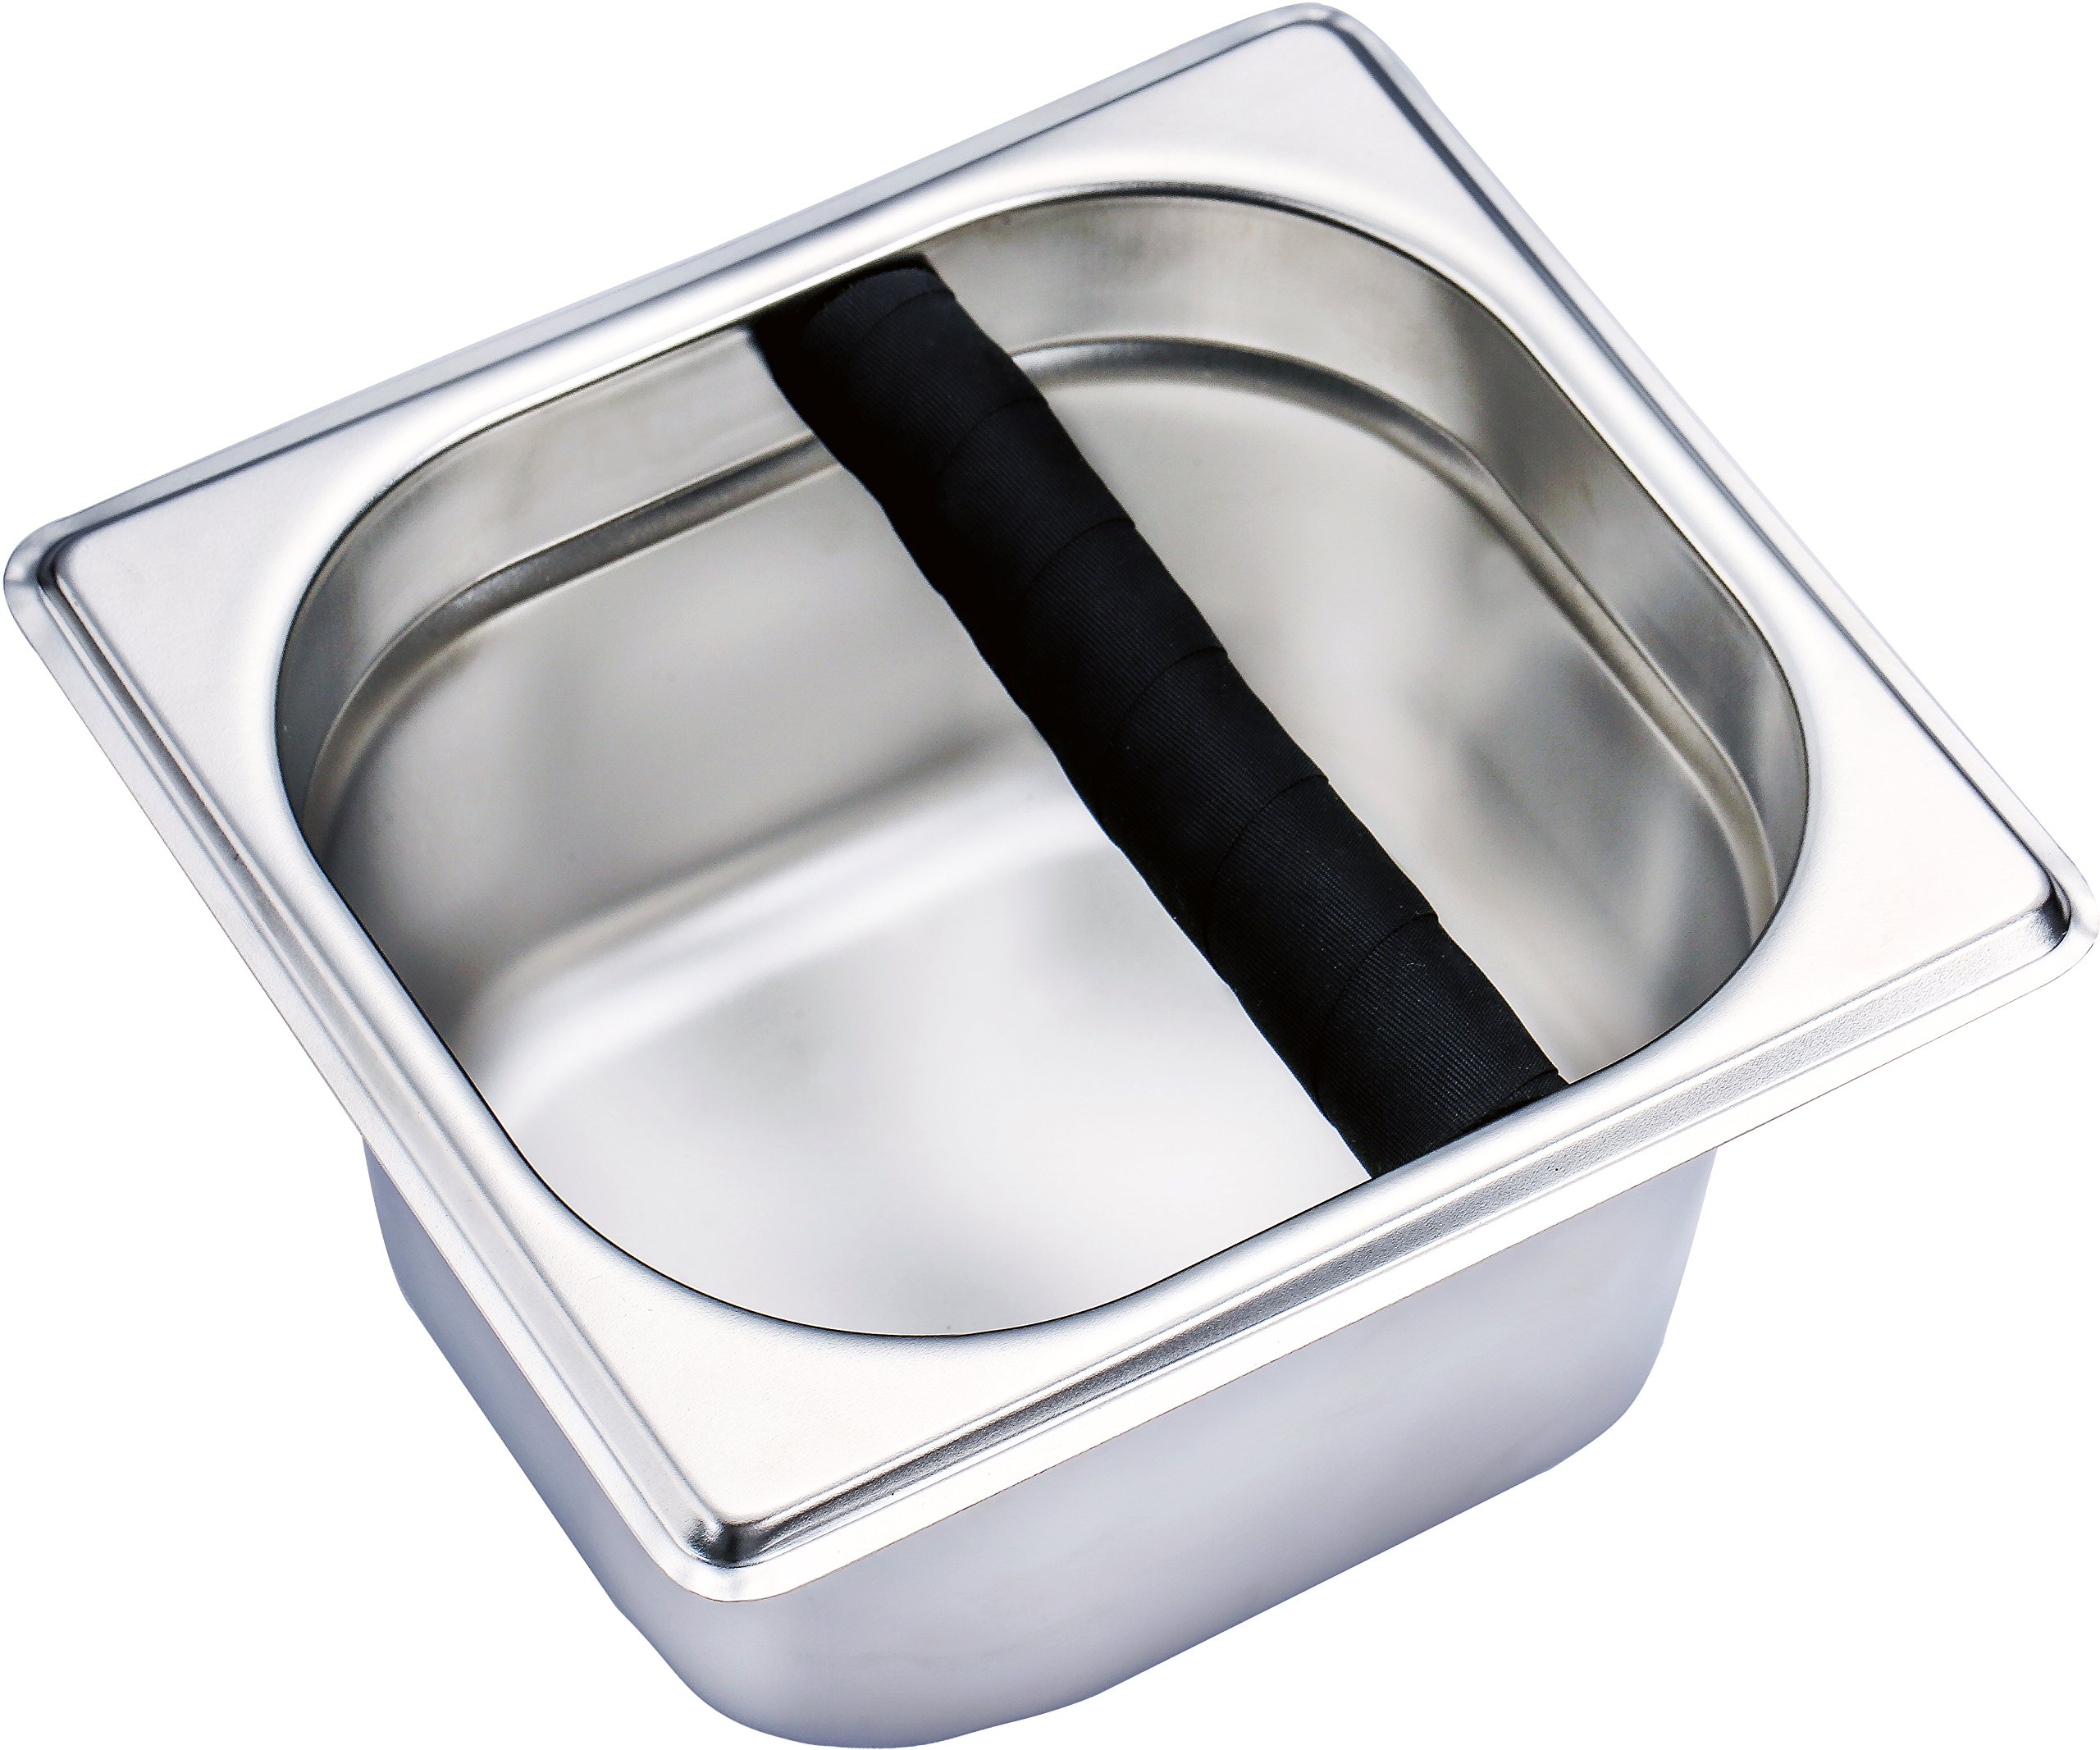 Coffee Knock Box,Espresso Knock Box,Knock Box Espresso,Knock Box Stainless